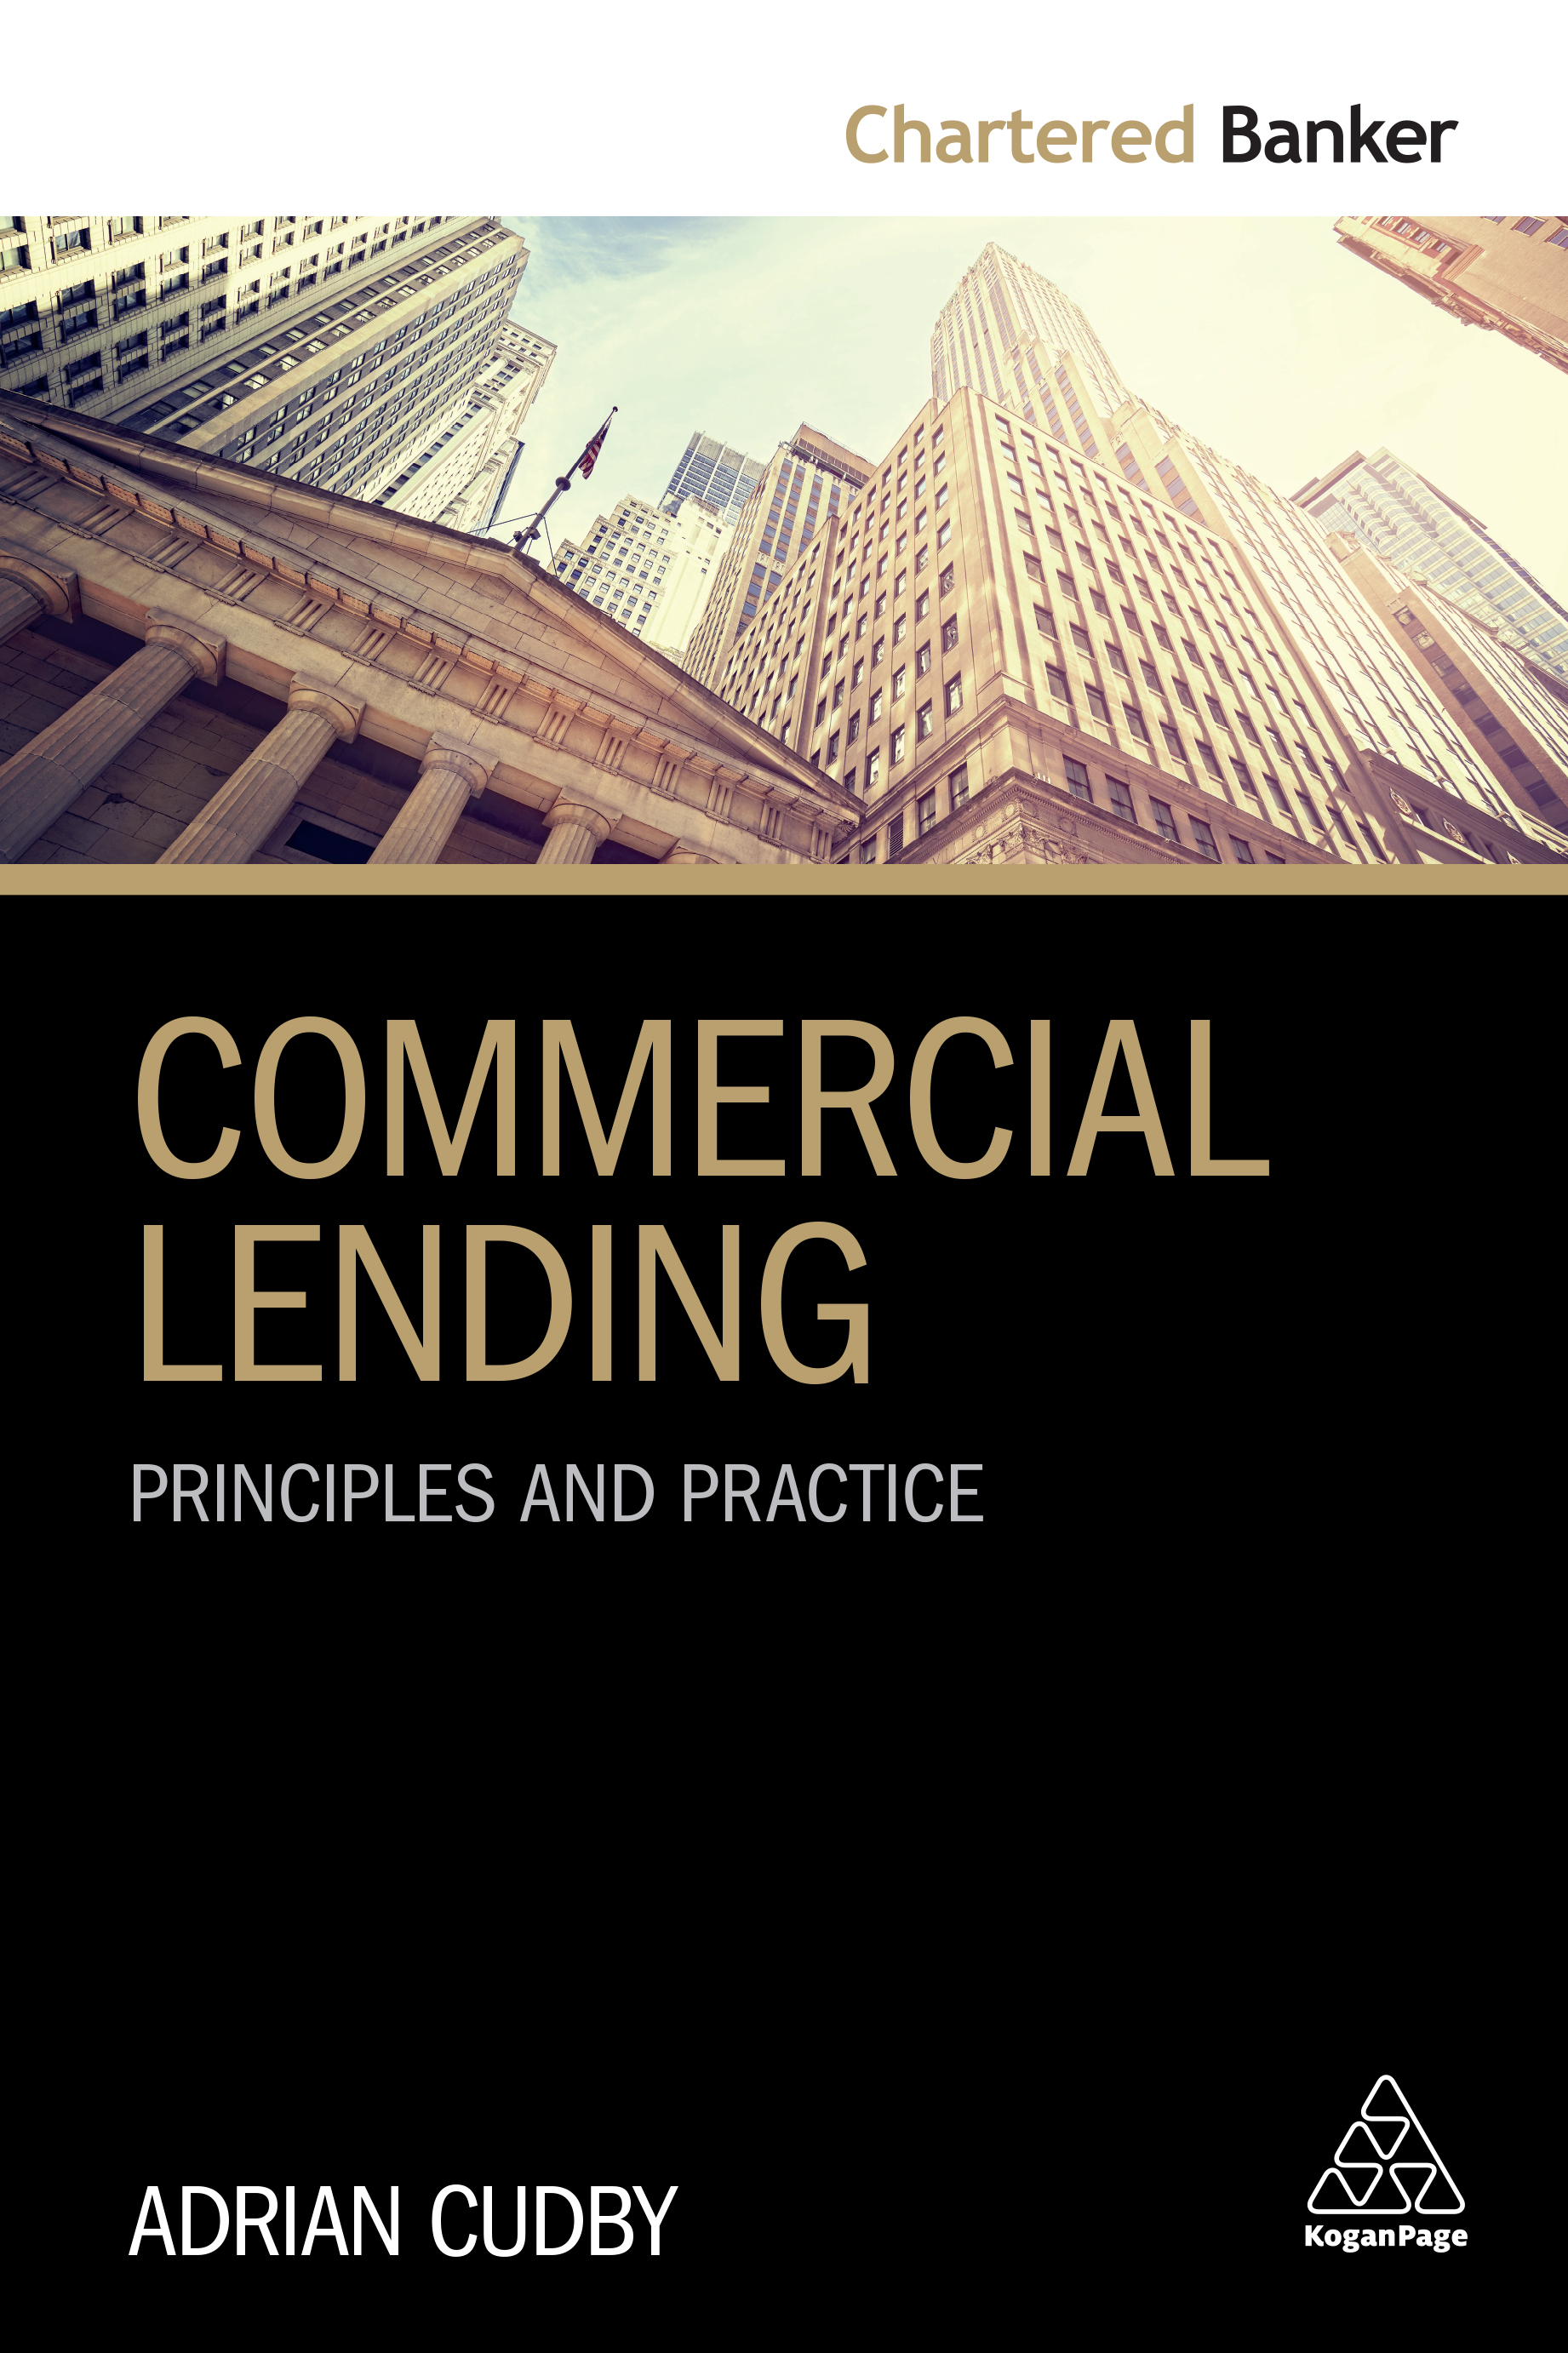 Download Ebook Commercial Lending by Adrian Cudby Pdf